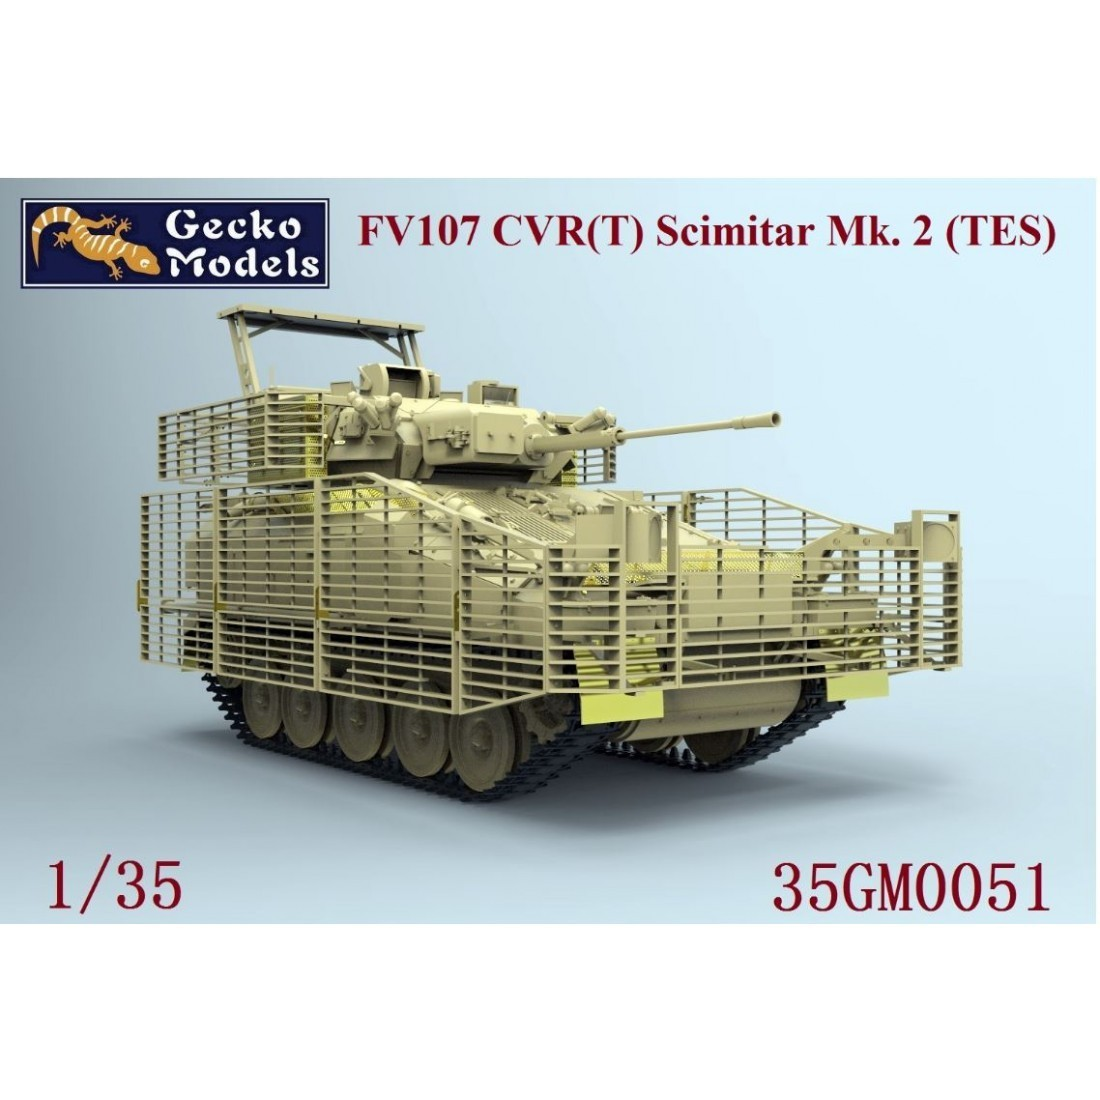 GECKO MODELS - Page 2 223-entry-2-1611823337